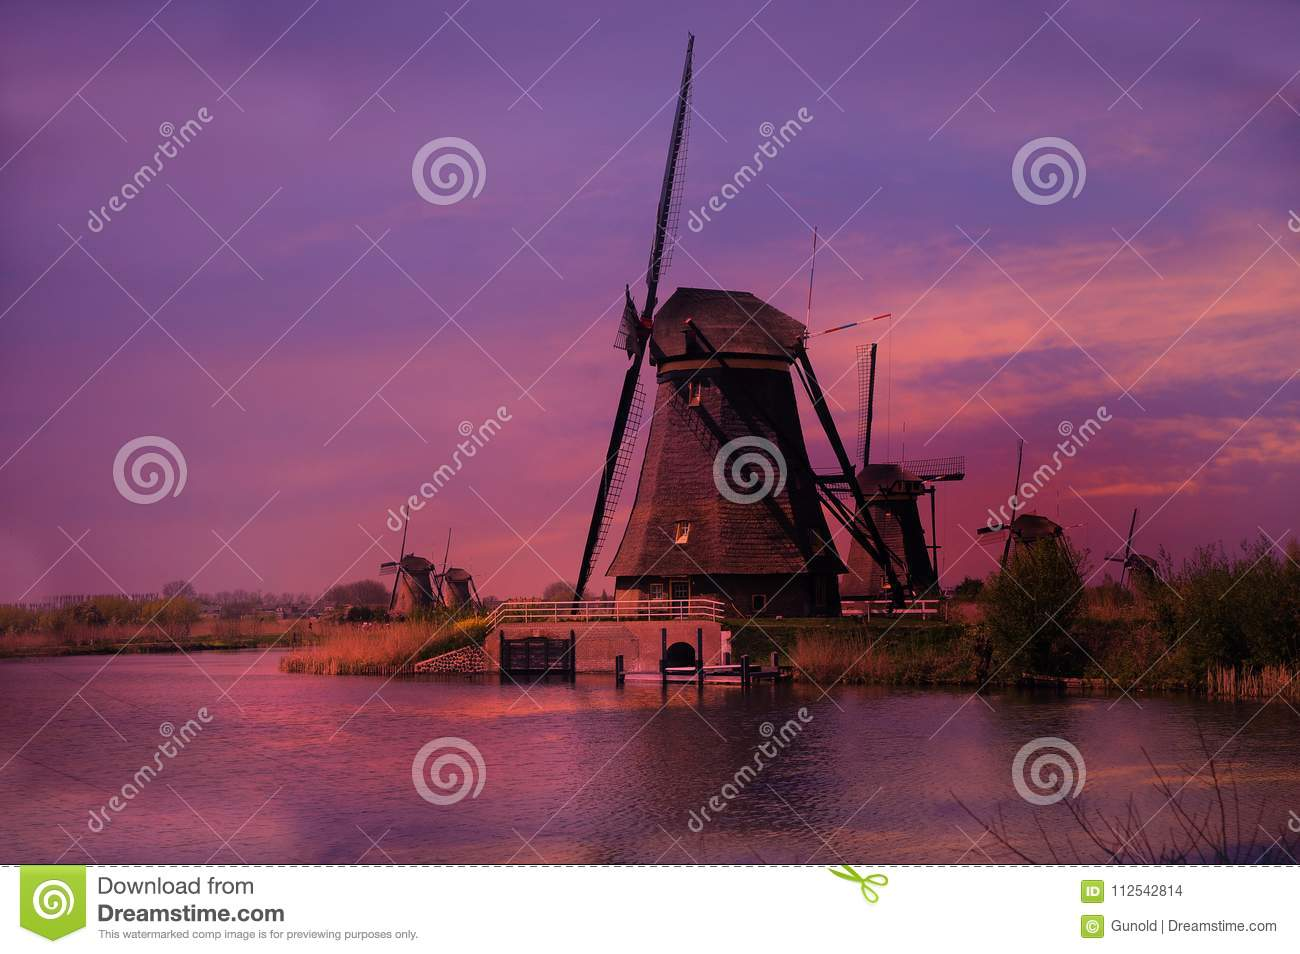 Sunset at the windmills in Kinderdijk in Netherlands